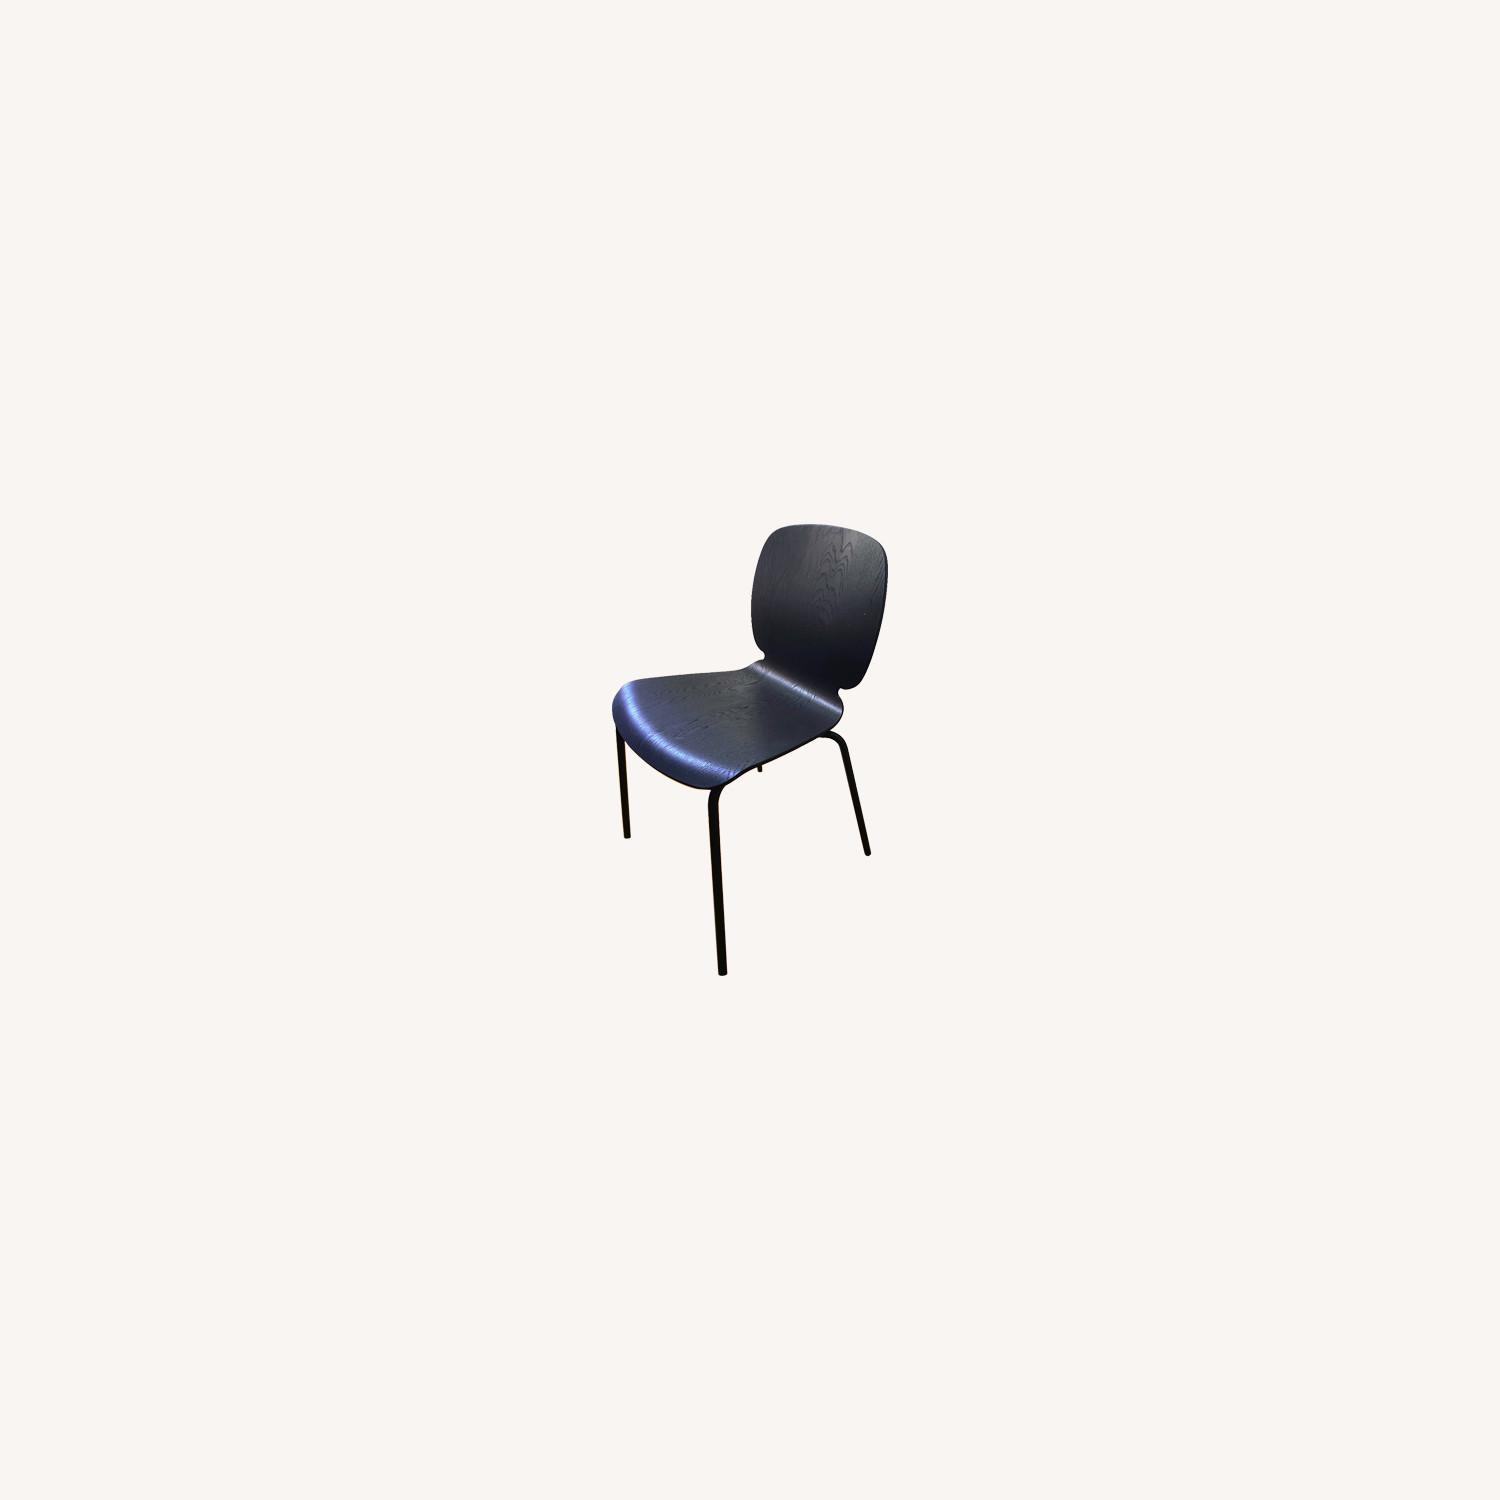 IKEA Black Dining Room Chairs - image-0